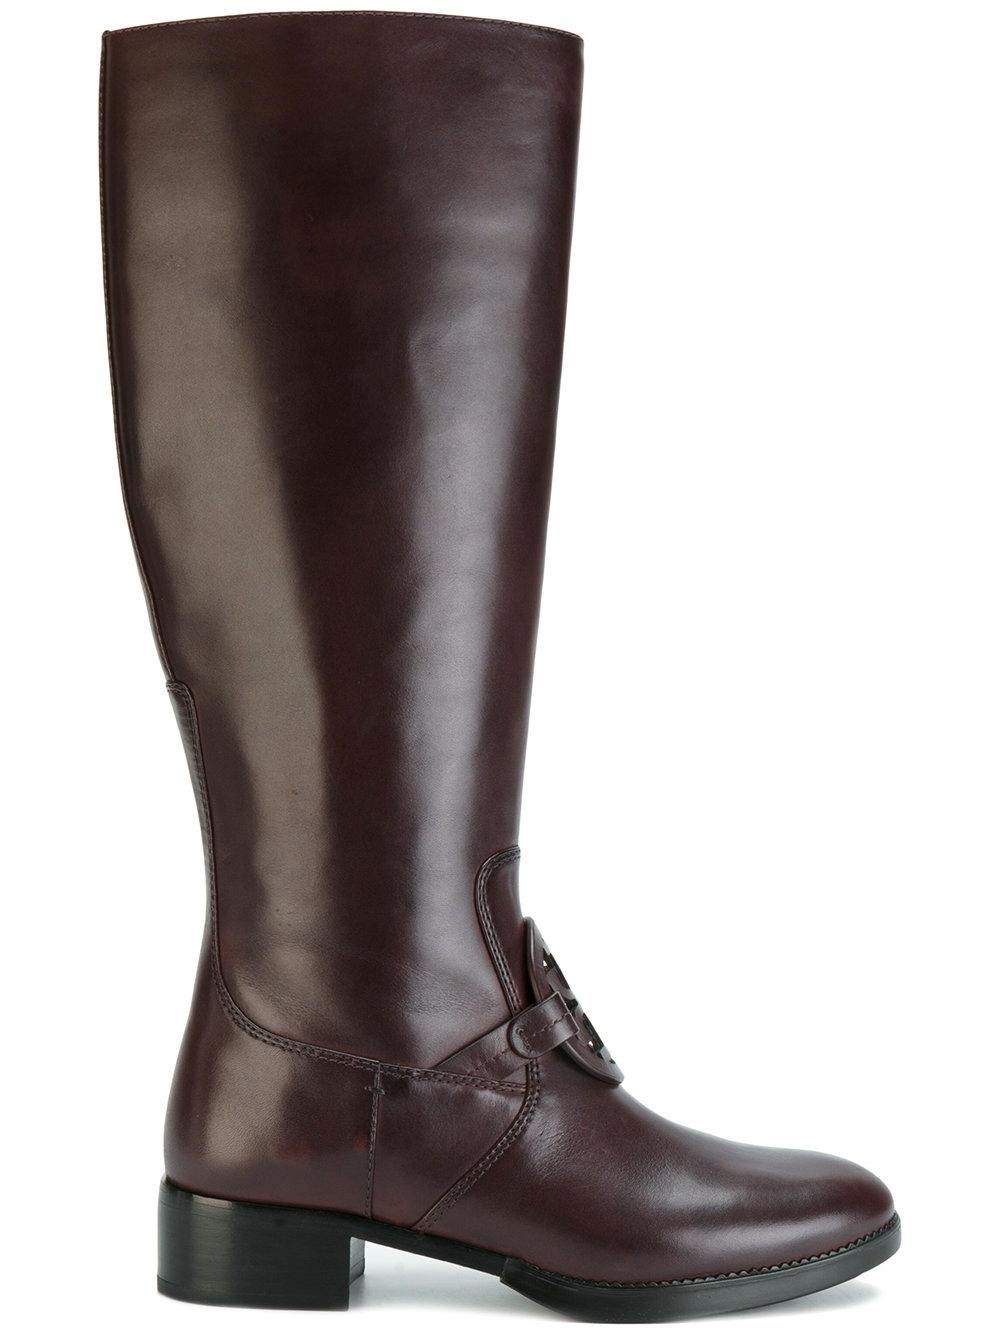 cd4cf4309d4d ... Tory Burch Burn Burn Burn Chocolate Miller Pull-on Leather  Boots Booties Size US ...